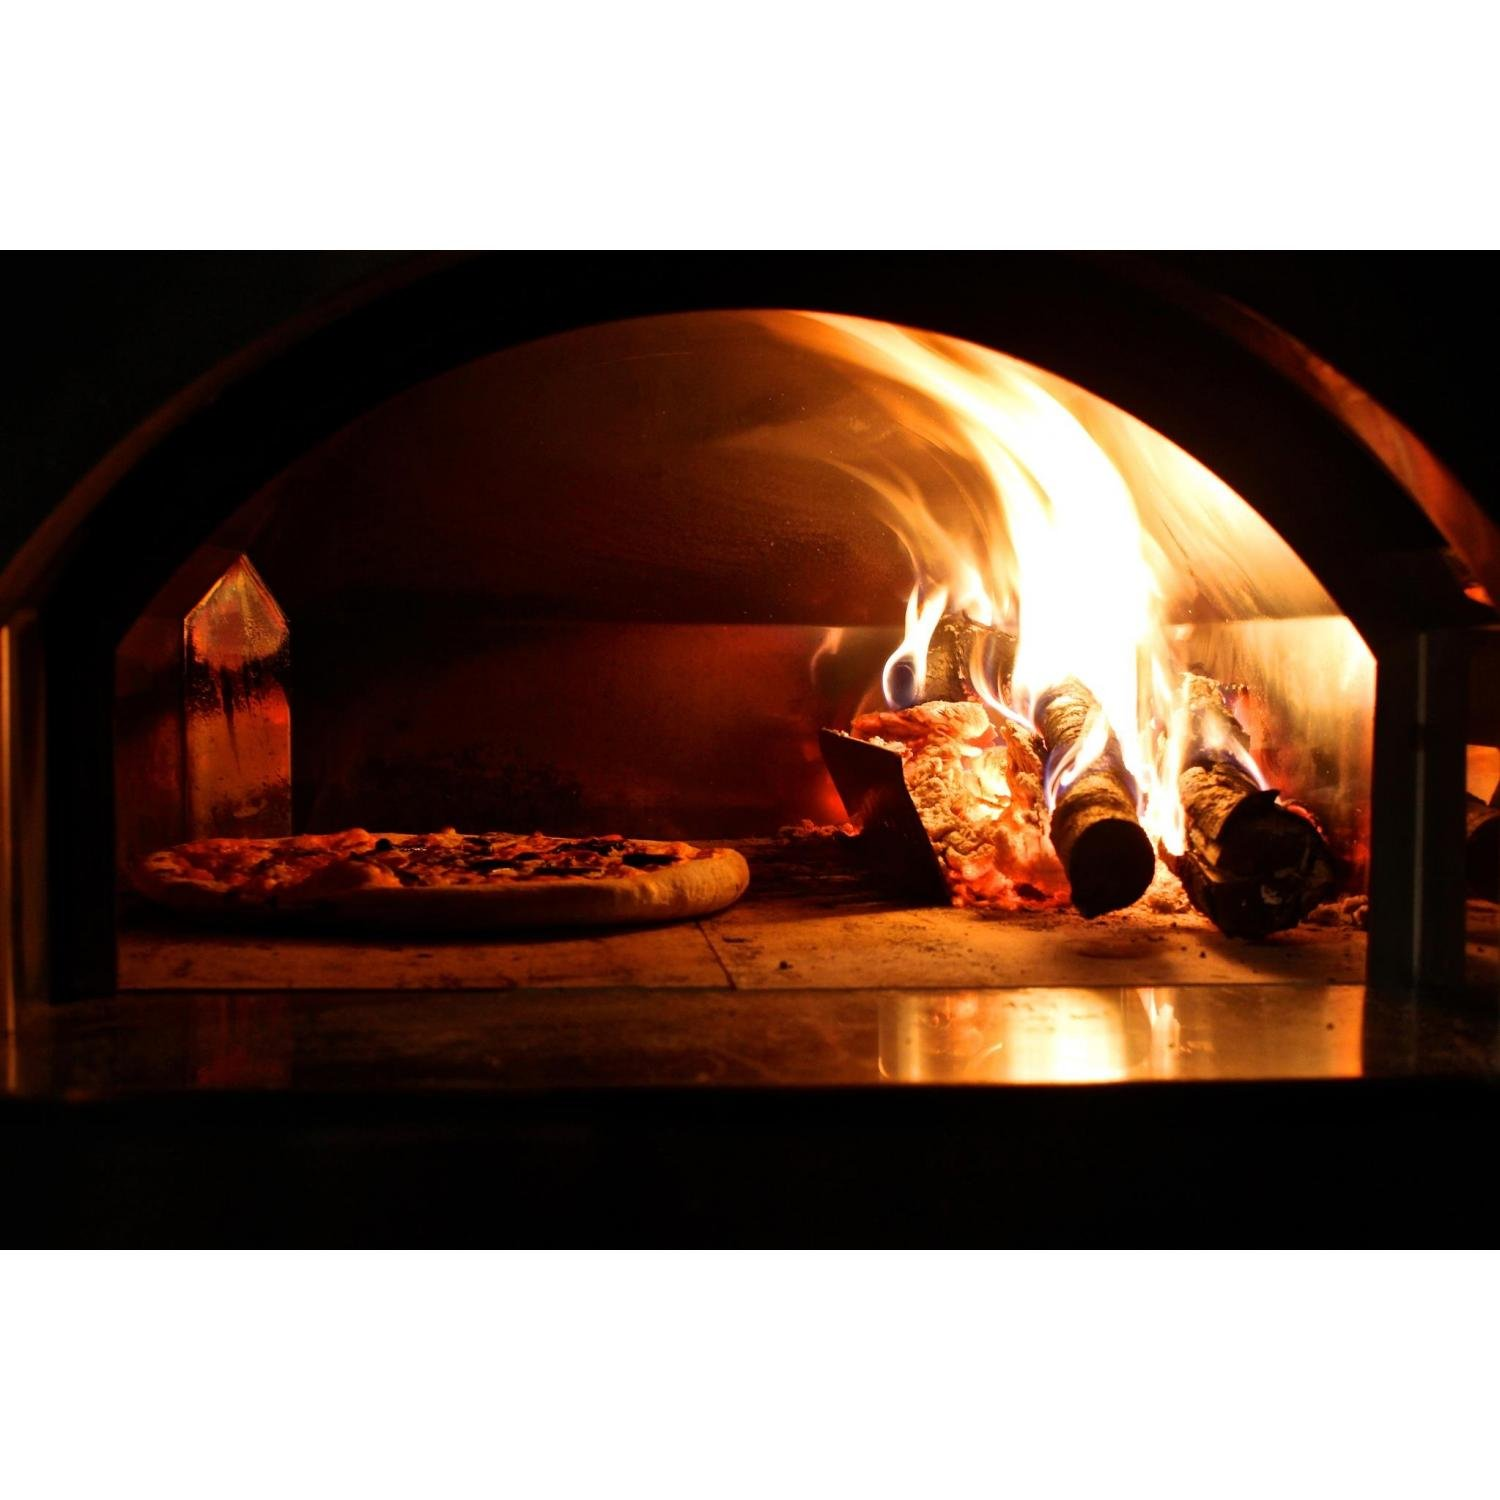 amazon com forno toscano mangiafuoco wood fired pizza oven on cart